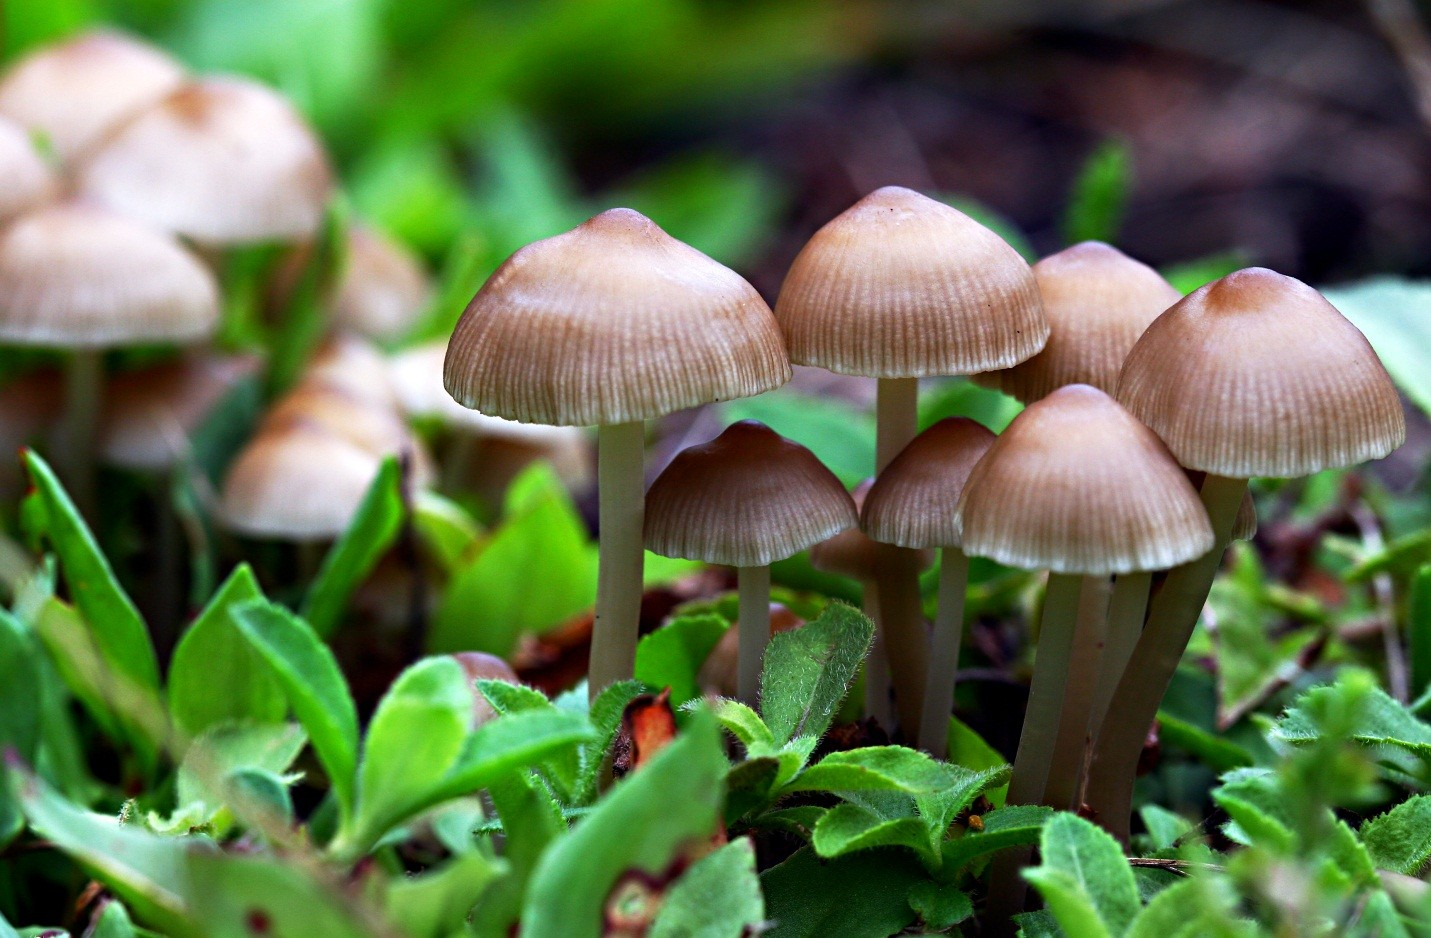 10 Most Bizarre Mushrooms And Fungi You Should Definitely Check